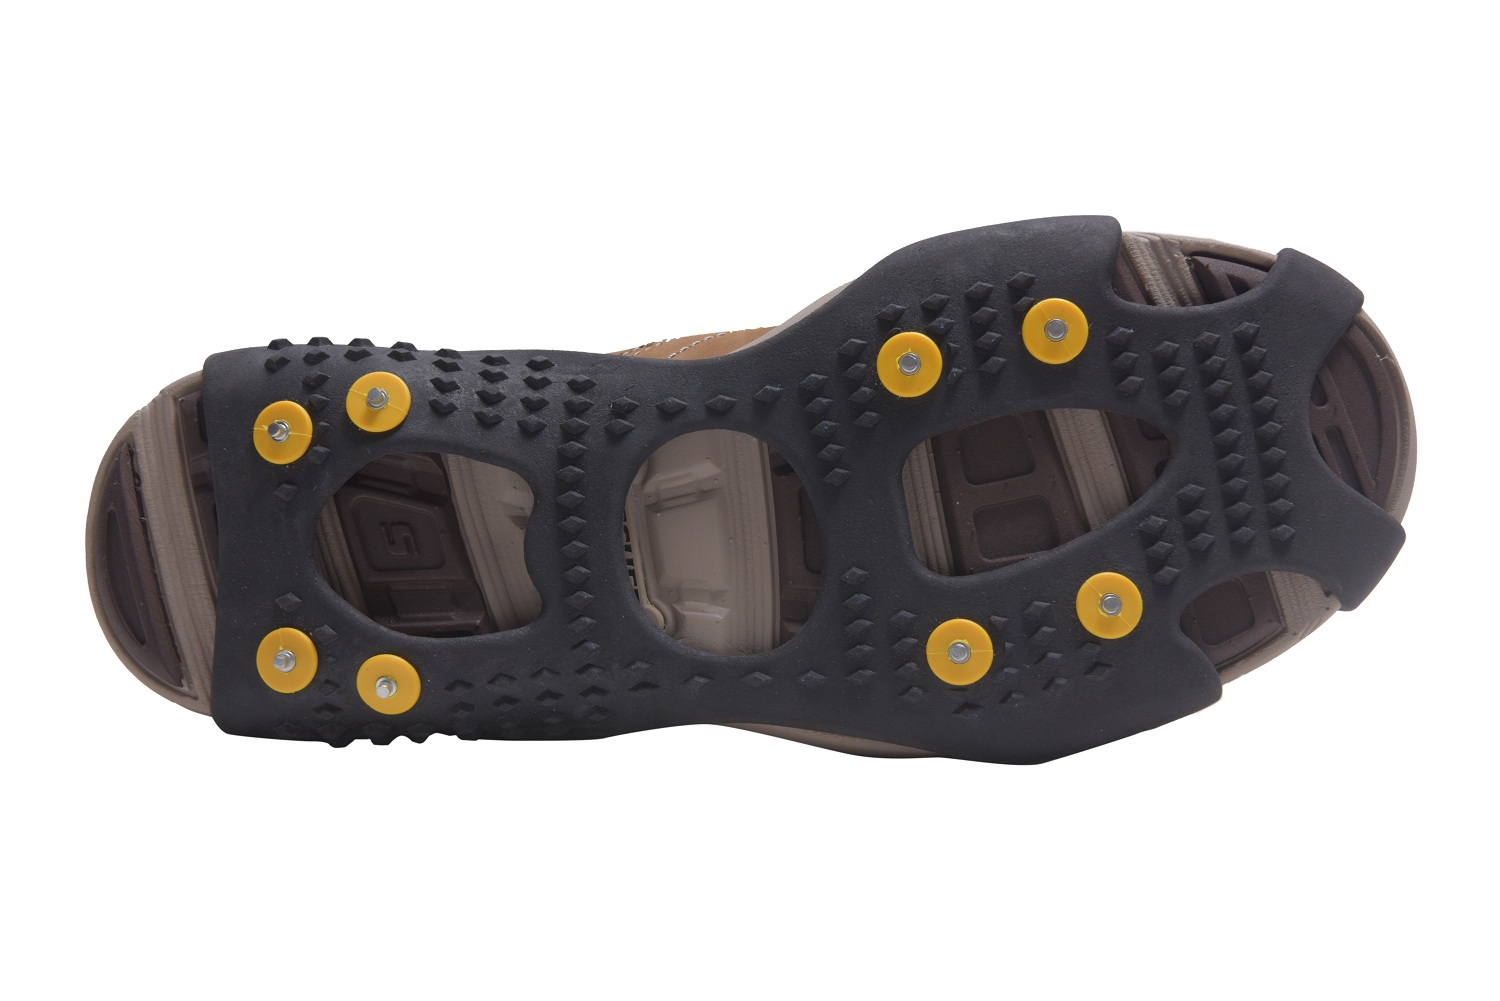 ICE CRAMPONS Suppliers